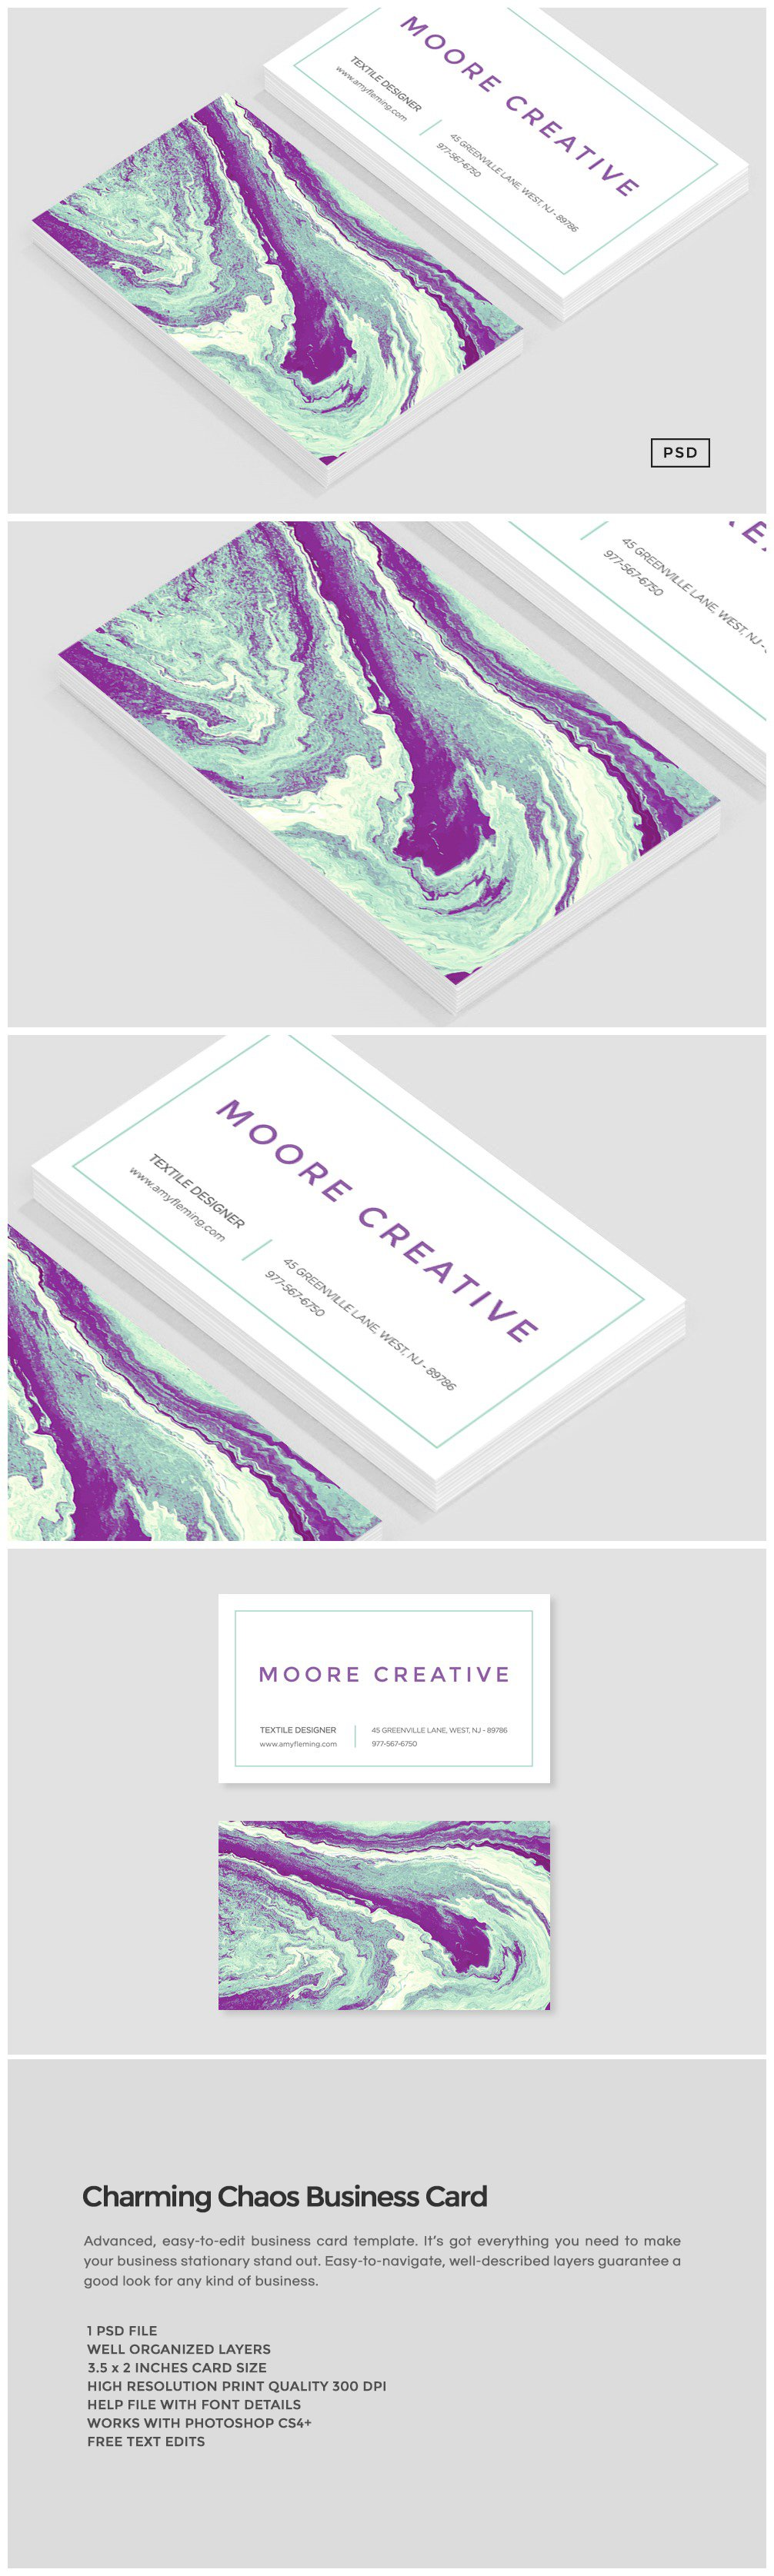 Charming chaos business card business card templates creative market reheart Gallery